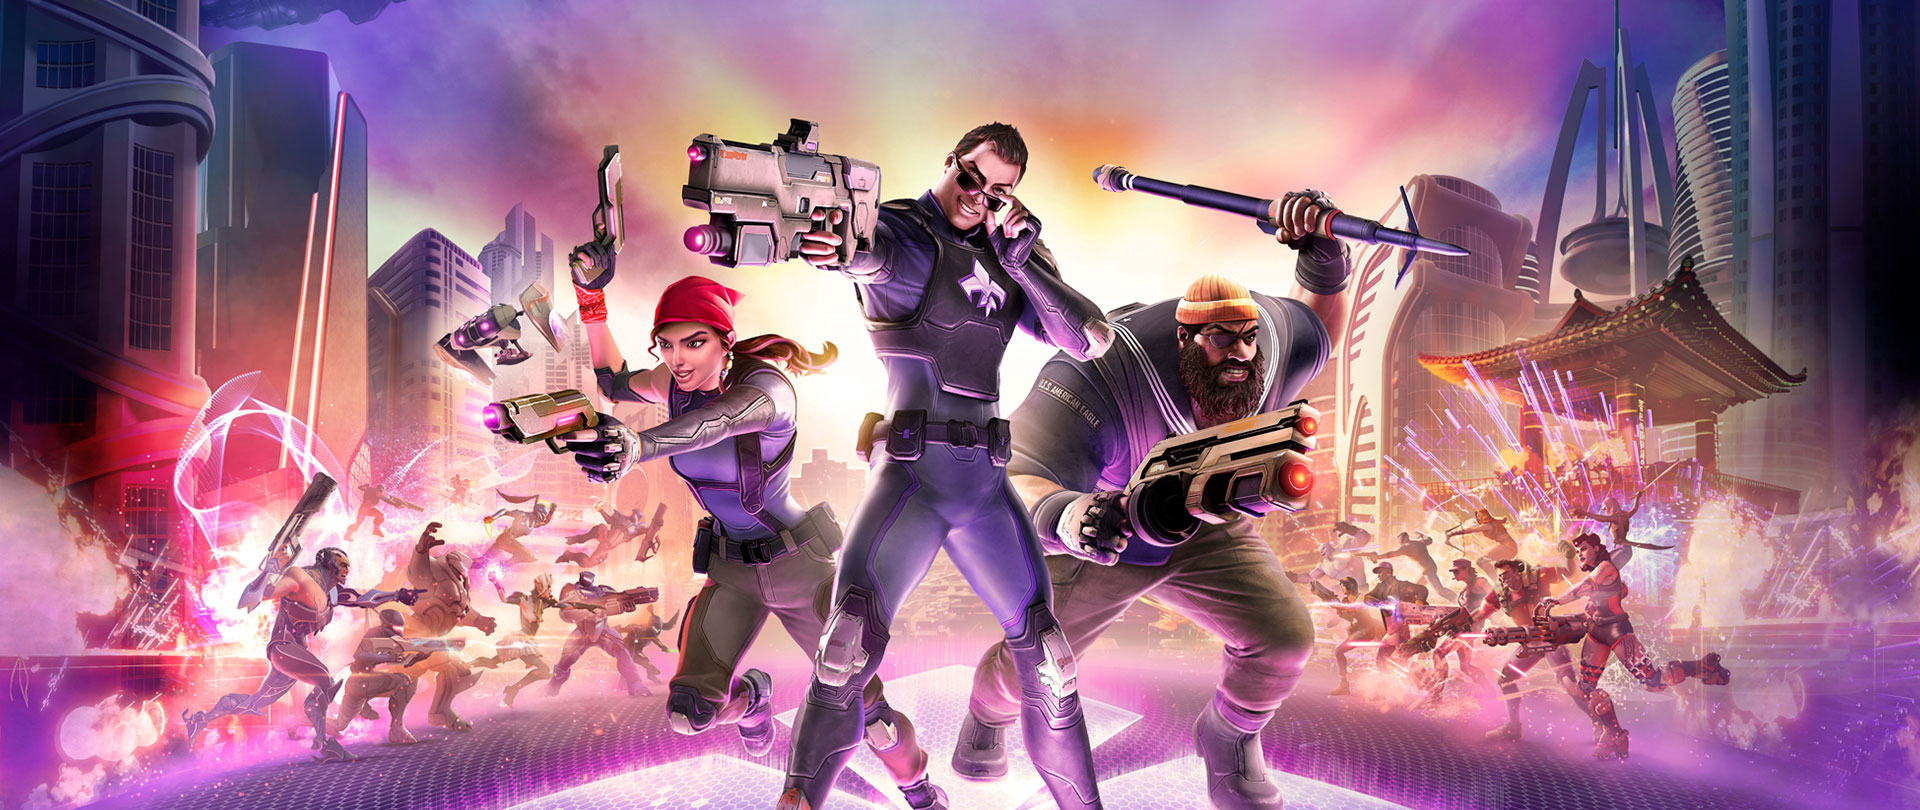 دانلود کرک CPY بازی Agents Of Mayhem